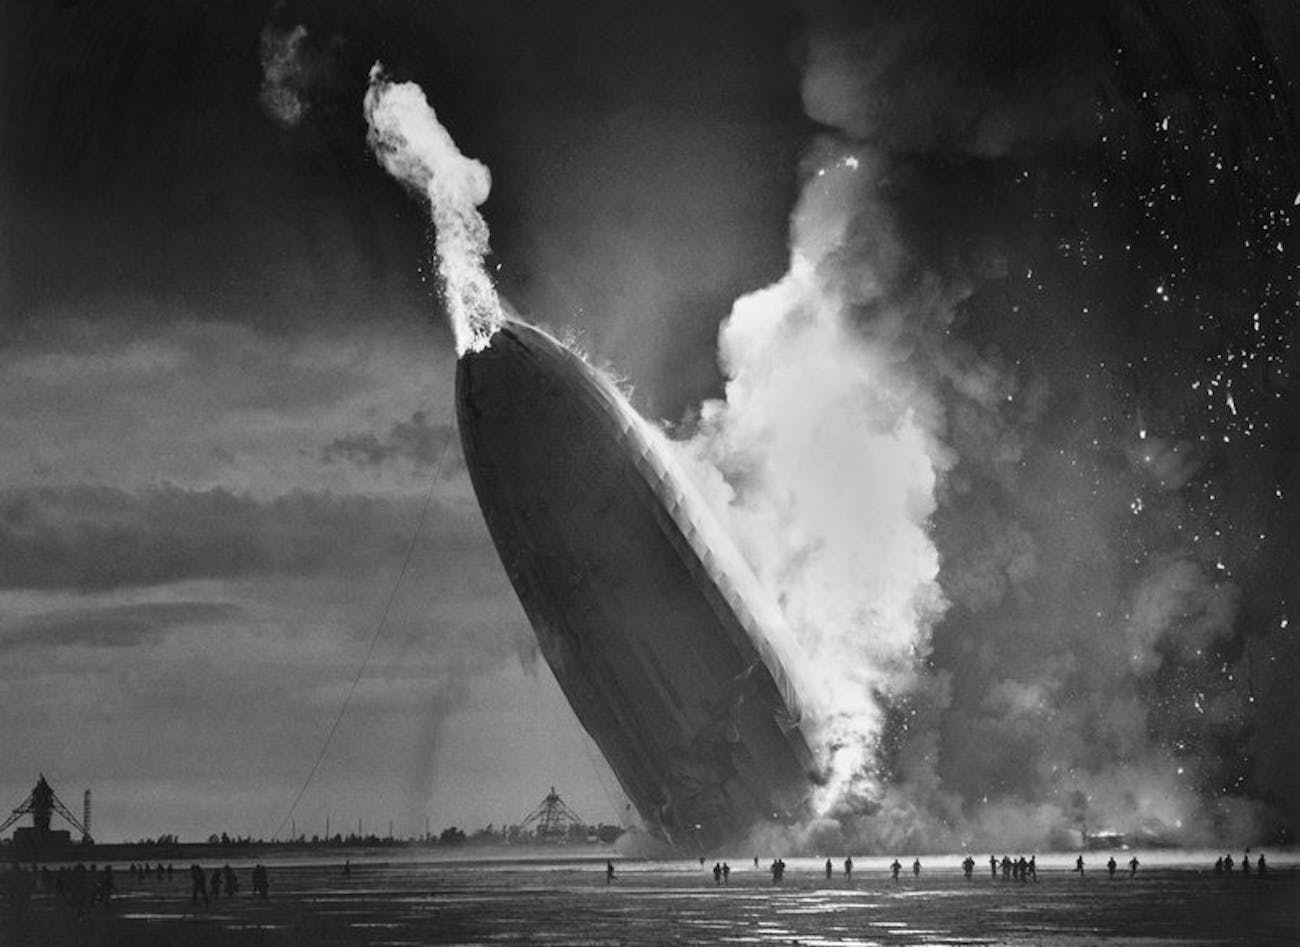 The Hindenburg Disaster changed flying forever.